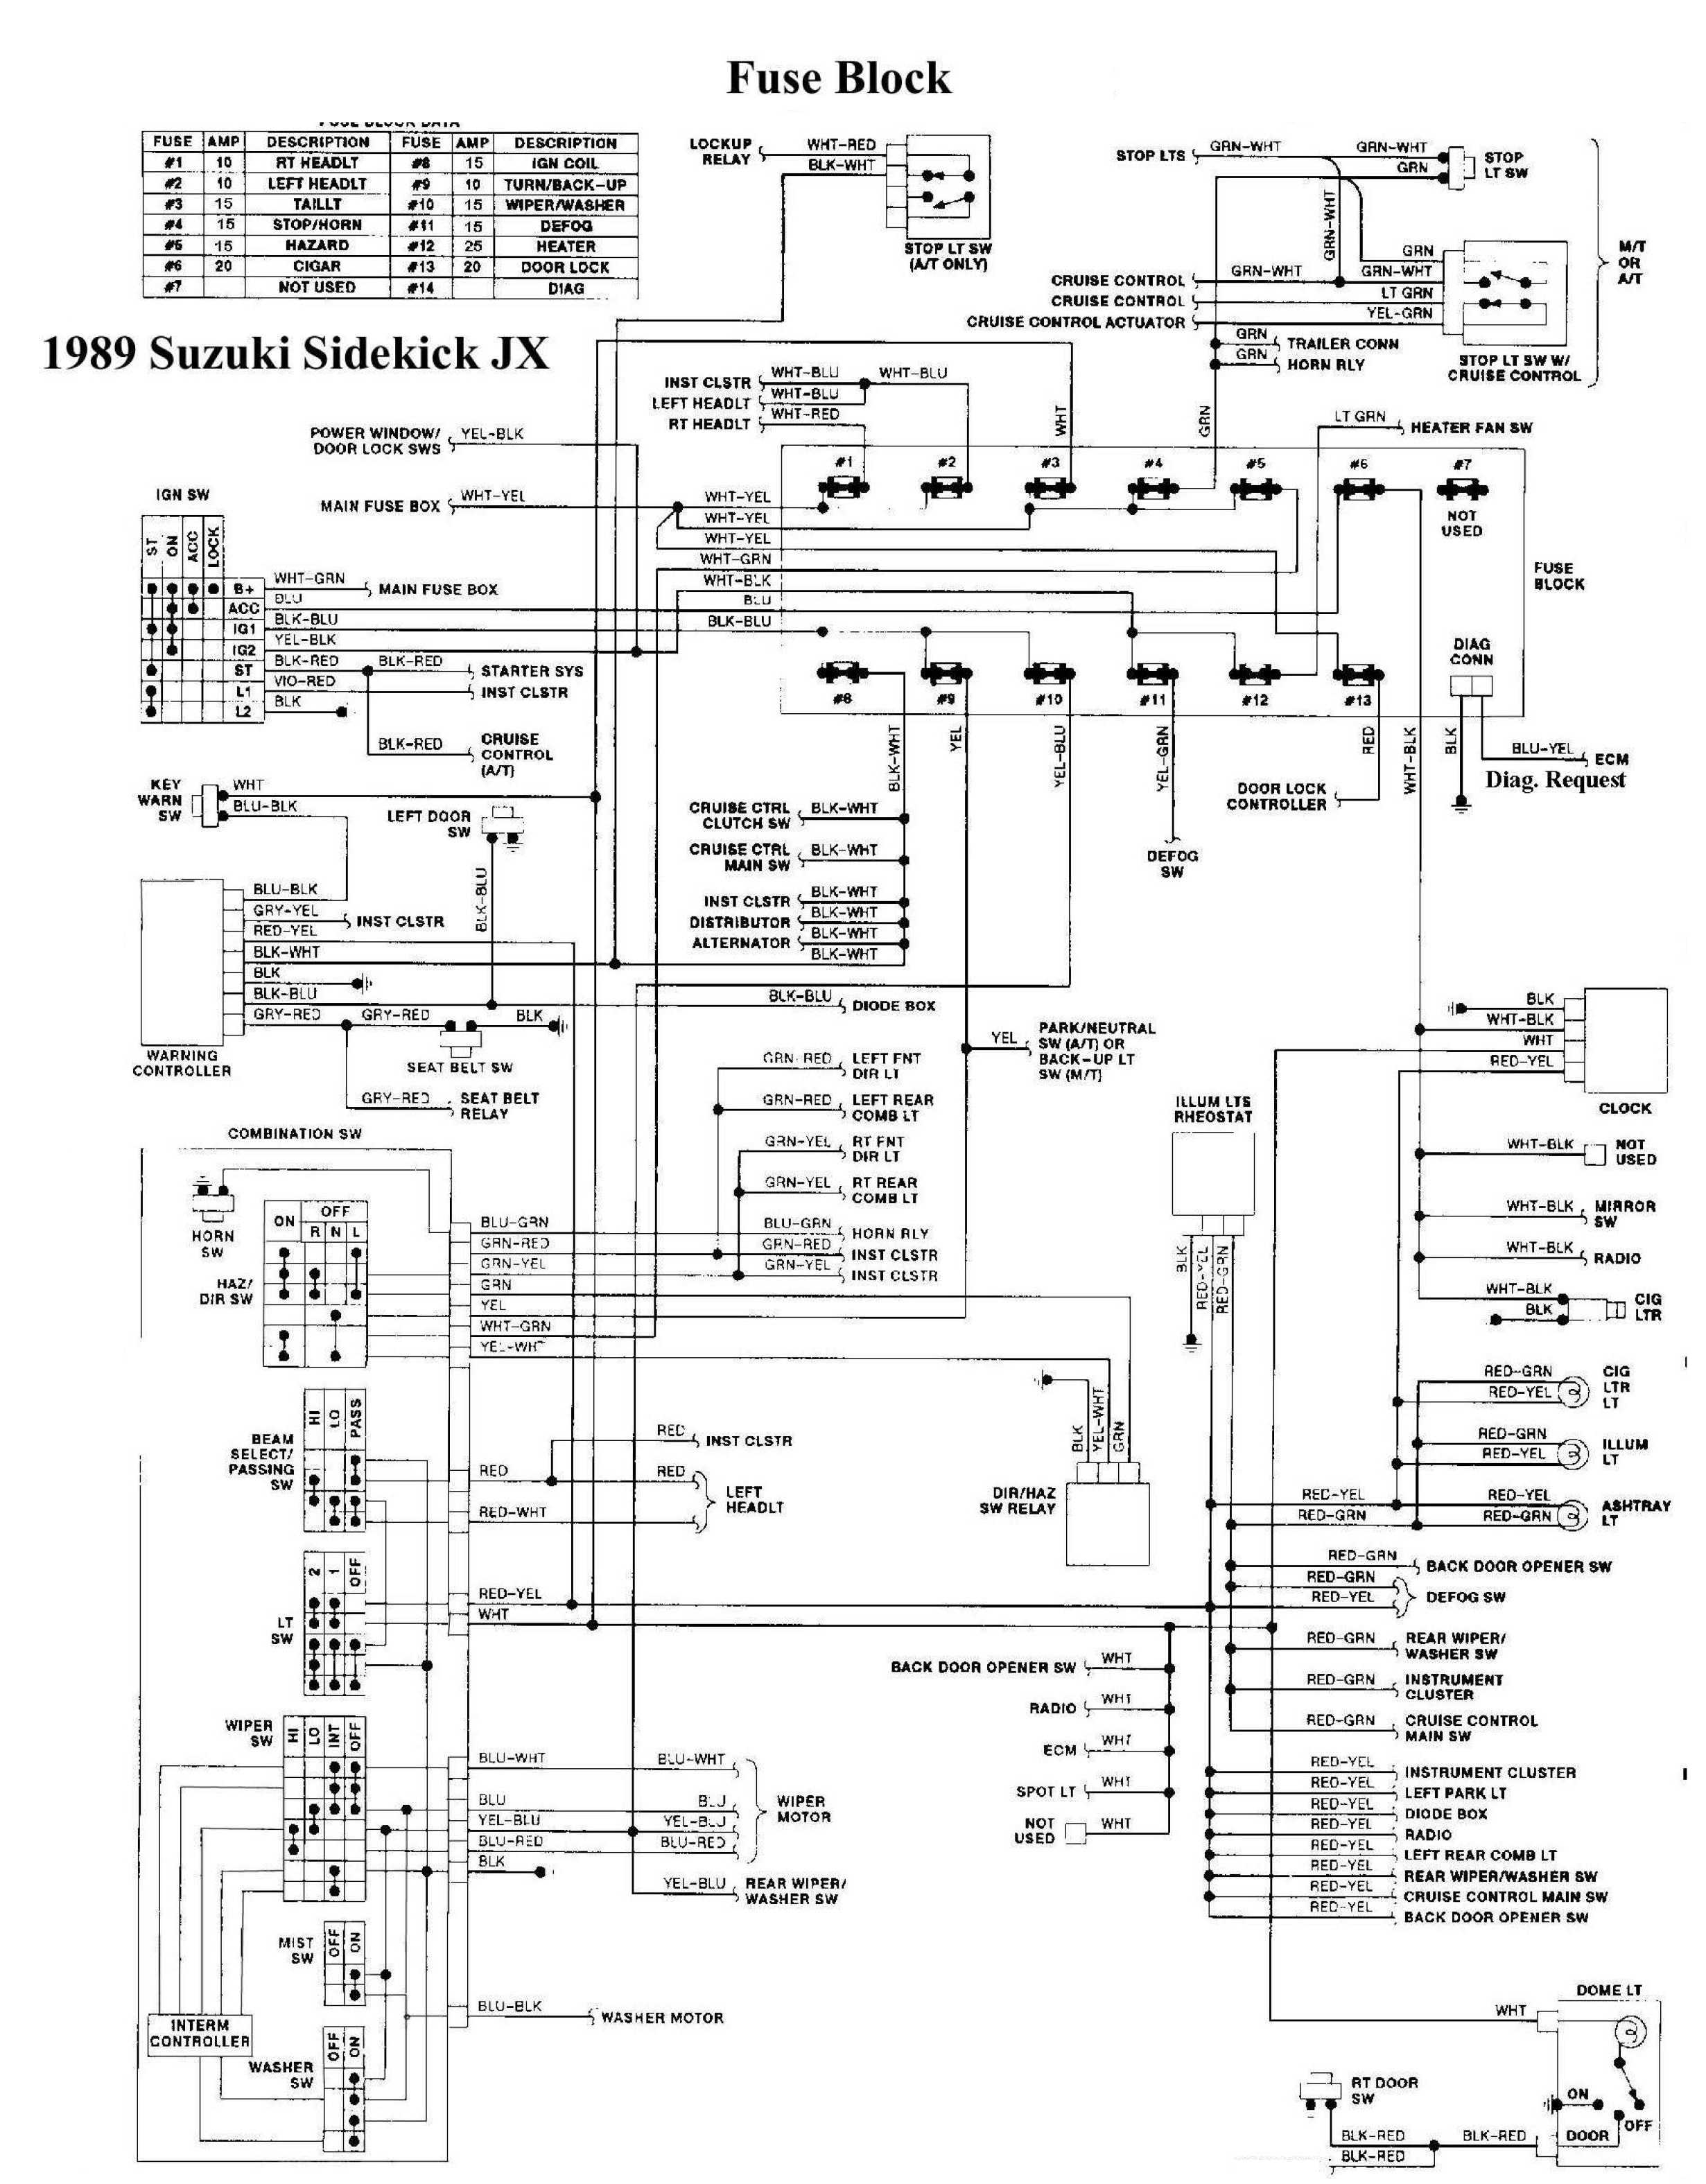 89_elect3a headlight switch problem! suzuki forums suzuki forum site 1996 geo metro wiring diagram at reclaimingppi.co